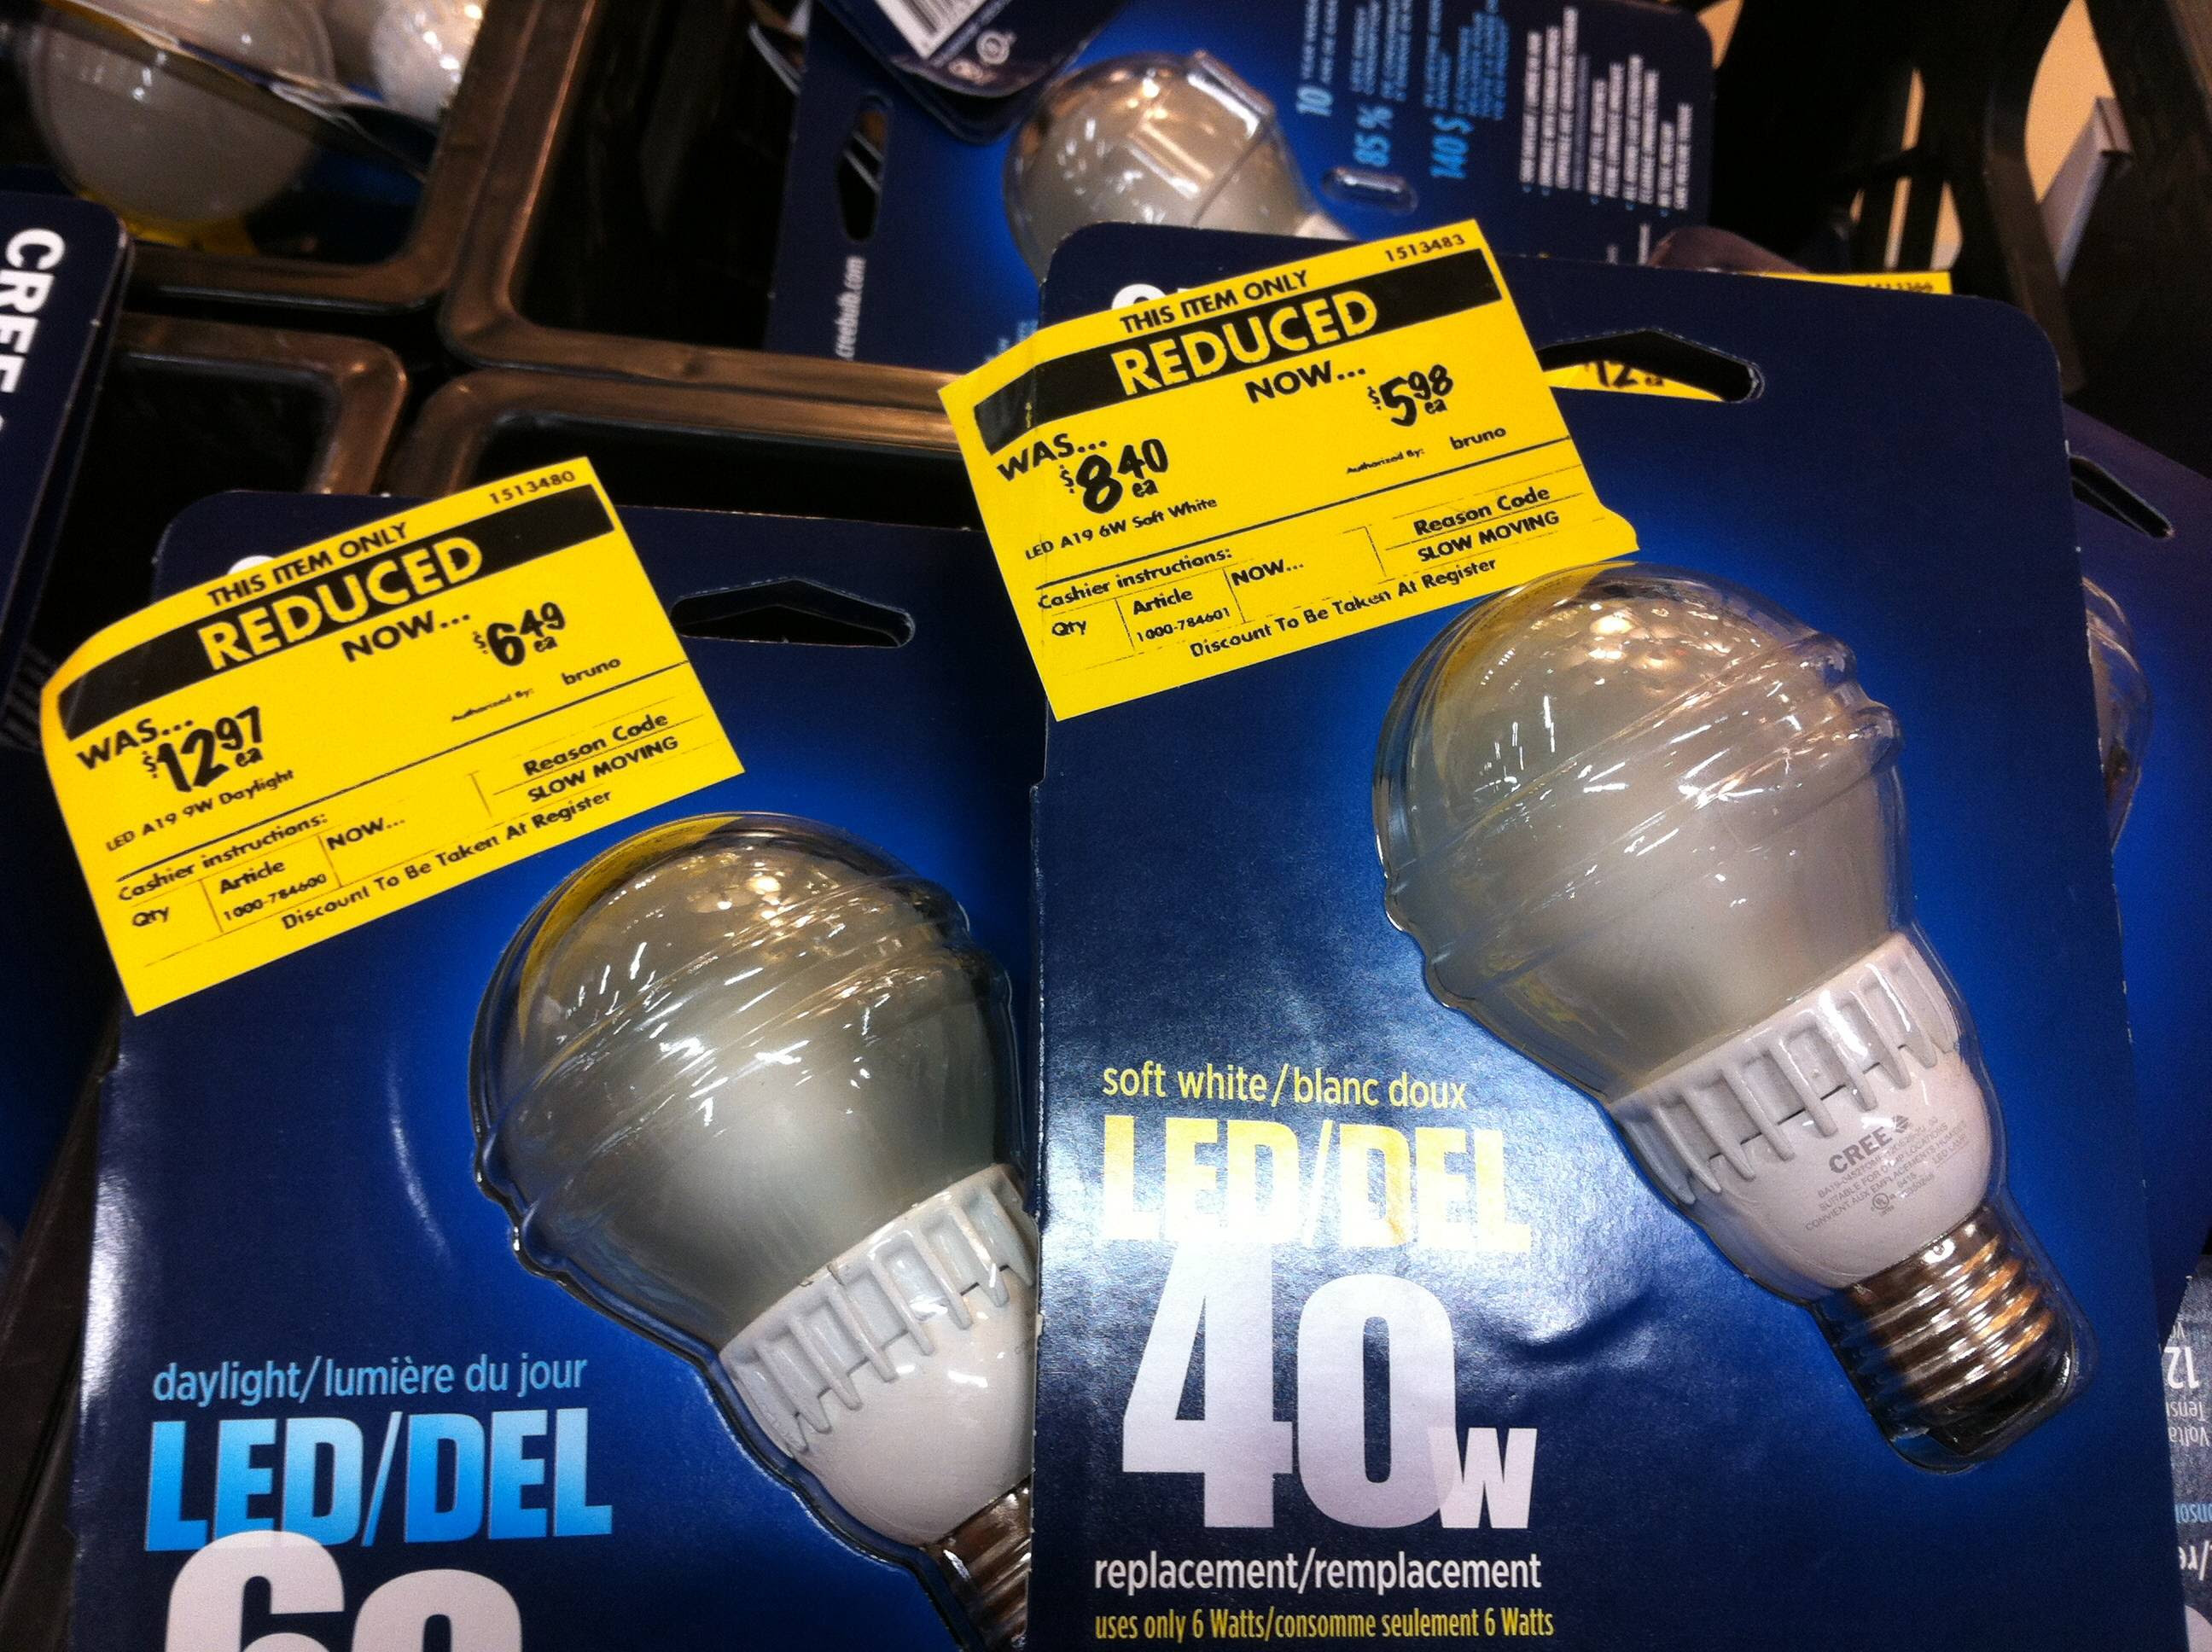 Home Depot] Cree A19 LED bulbs $0 98 $1 49 after energy rebate